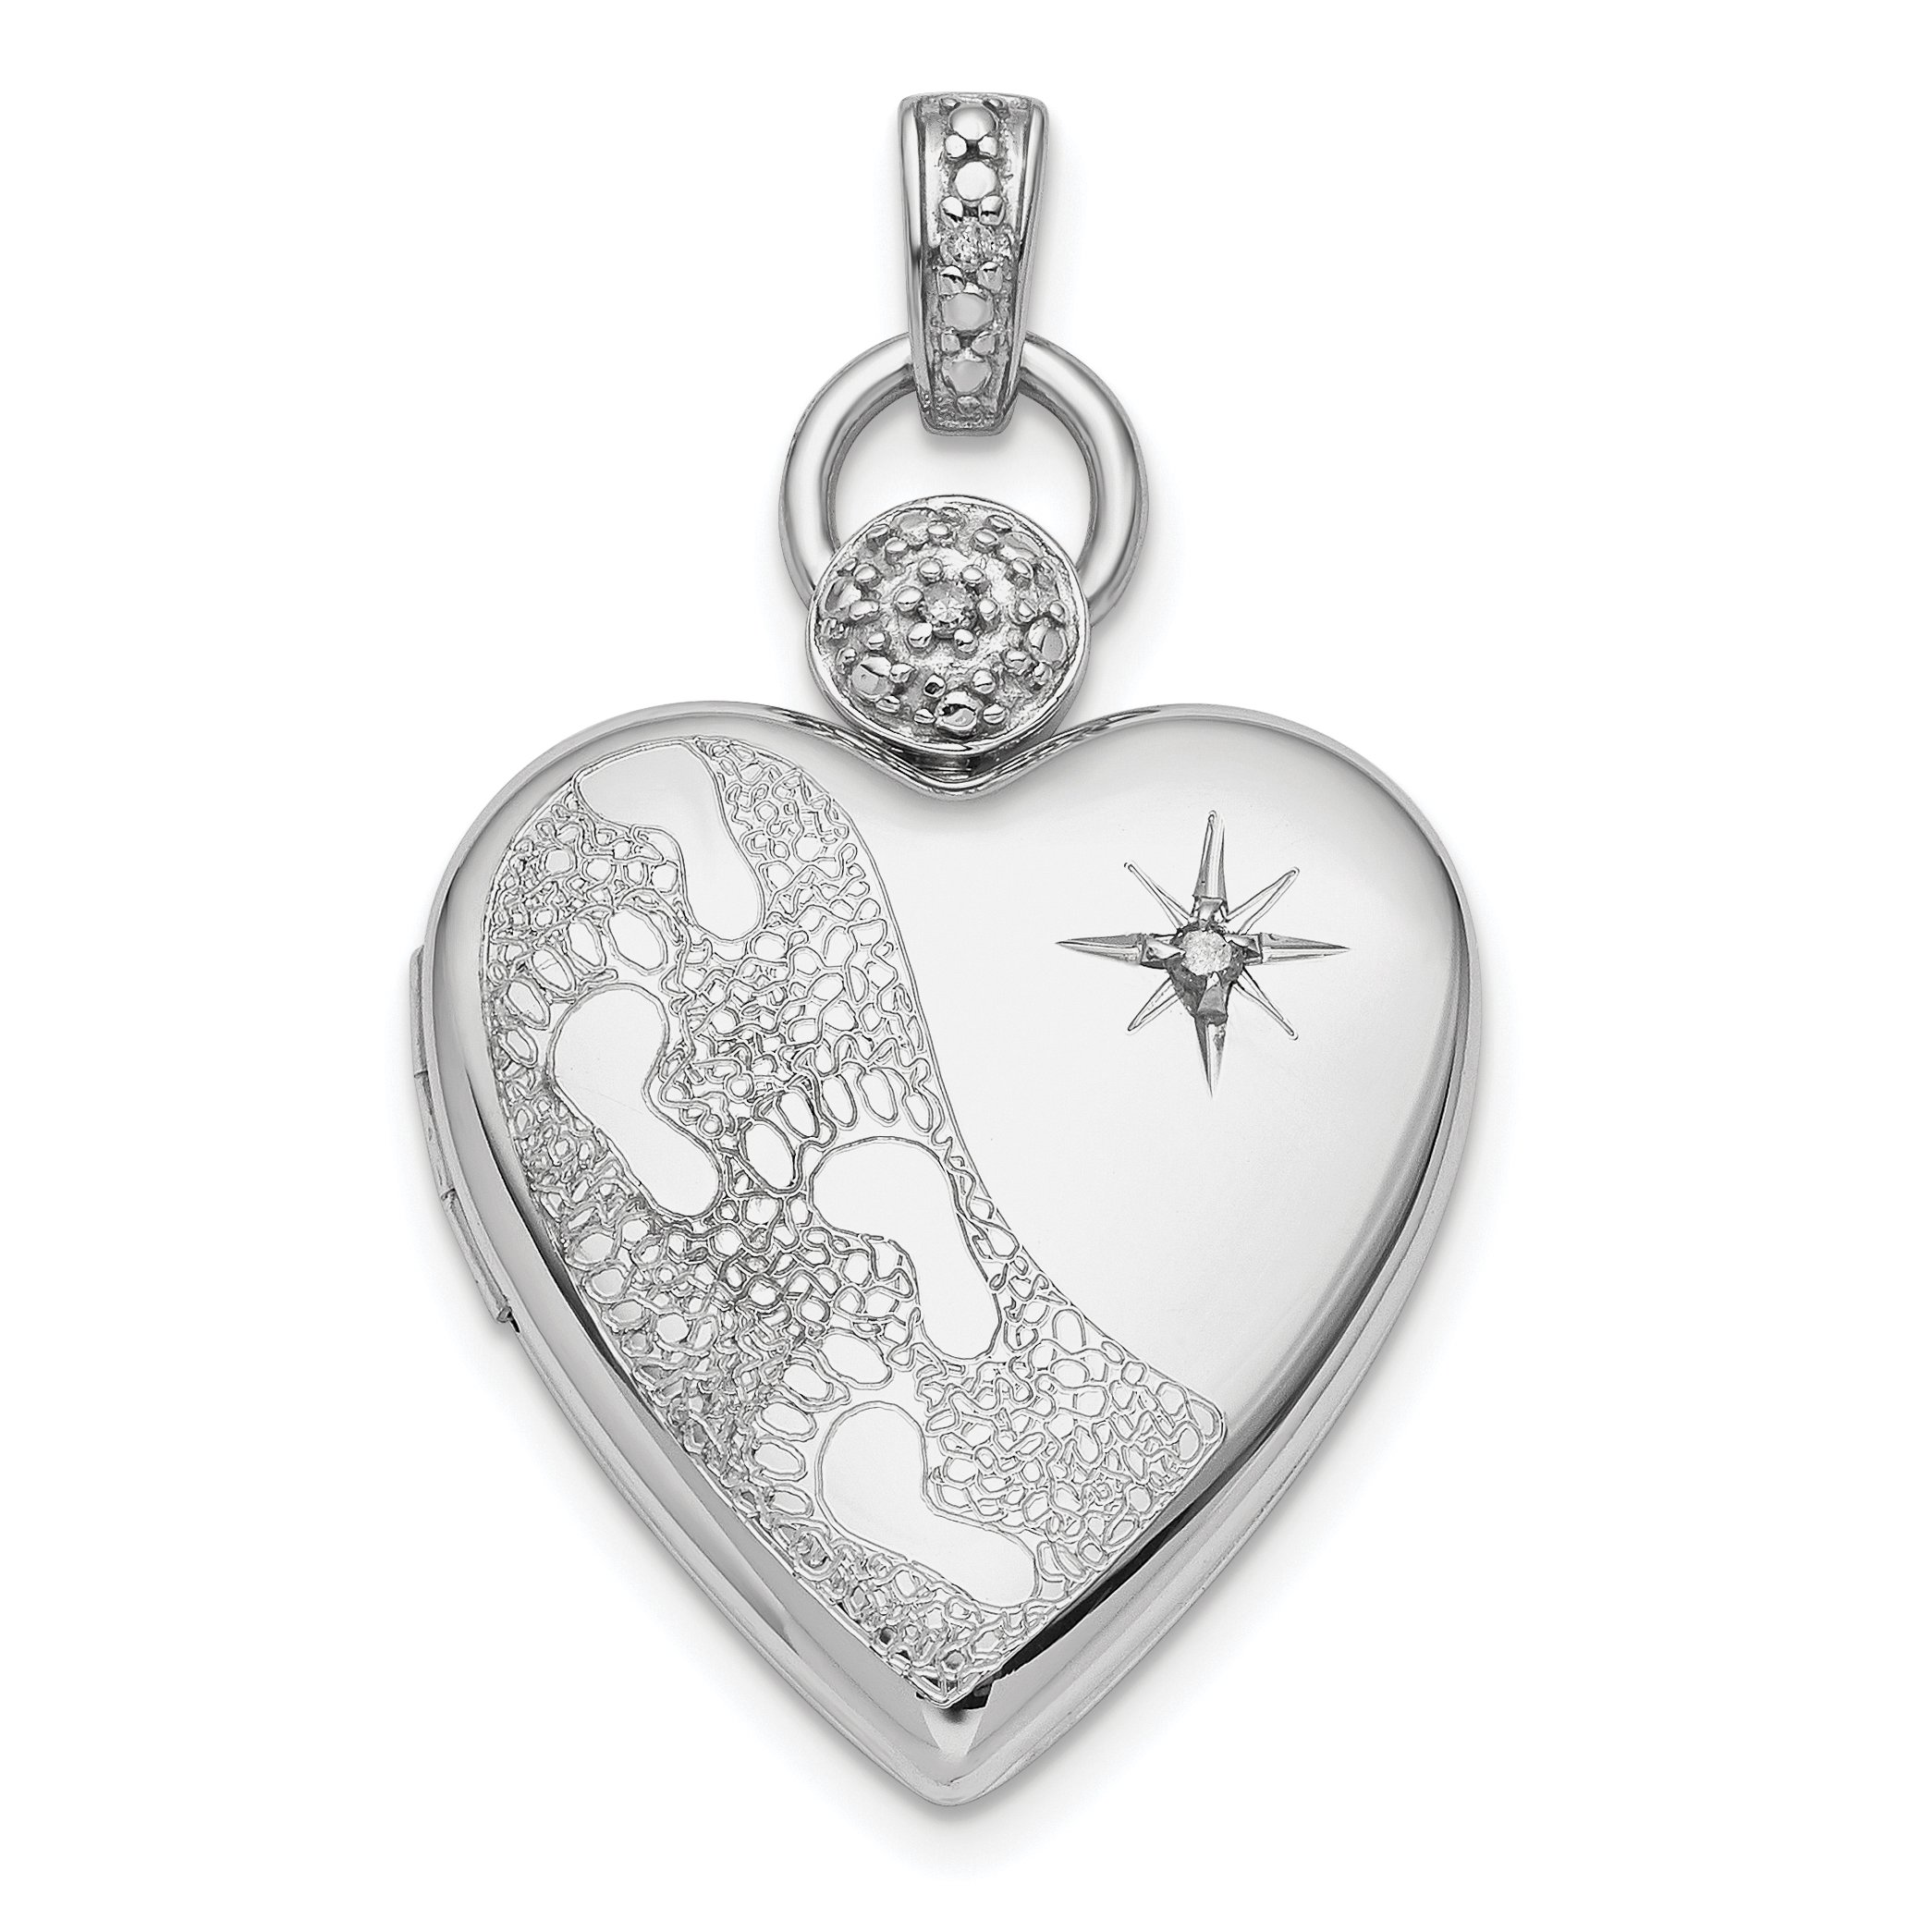 ICE CARATS 925 Sterling Silver Plate 21mm Diamond Accent Footprint Photo Pendant Charm Locket Chain Necklace That Holds Pictures Fine Jewelry Gift Set For Women Heart